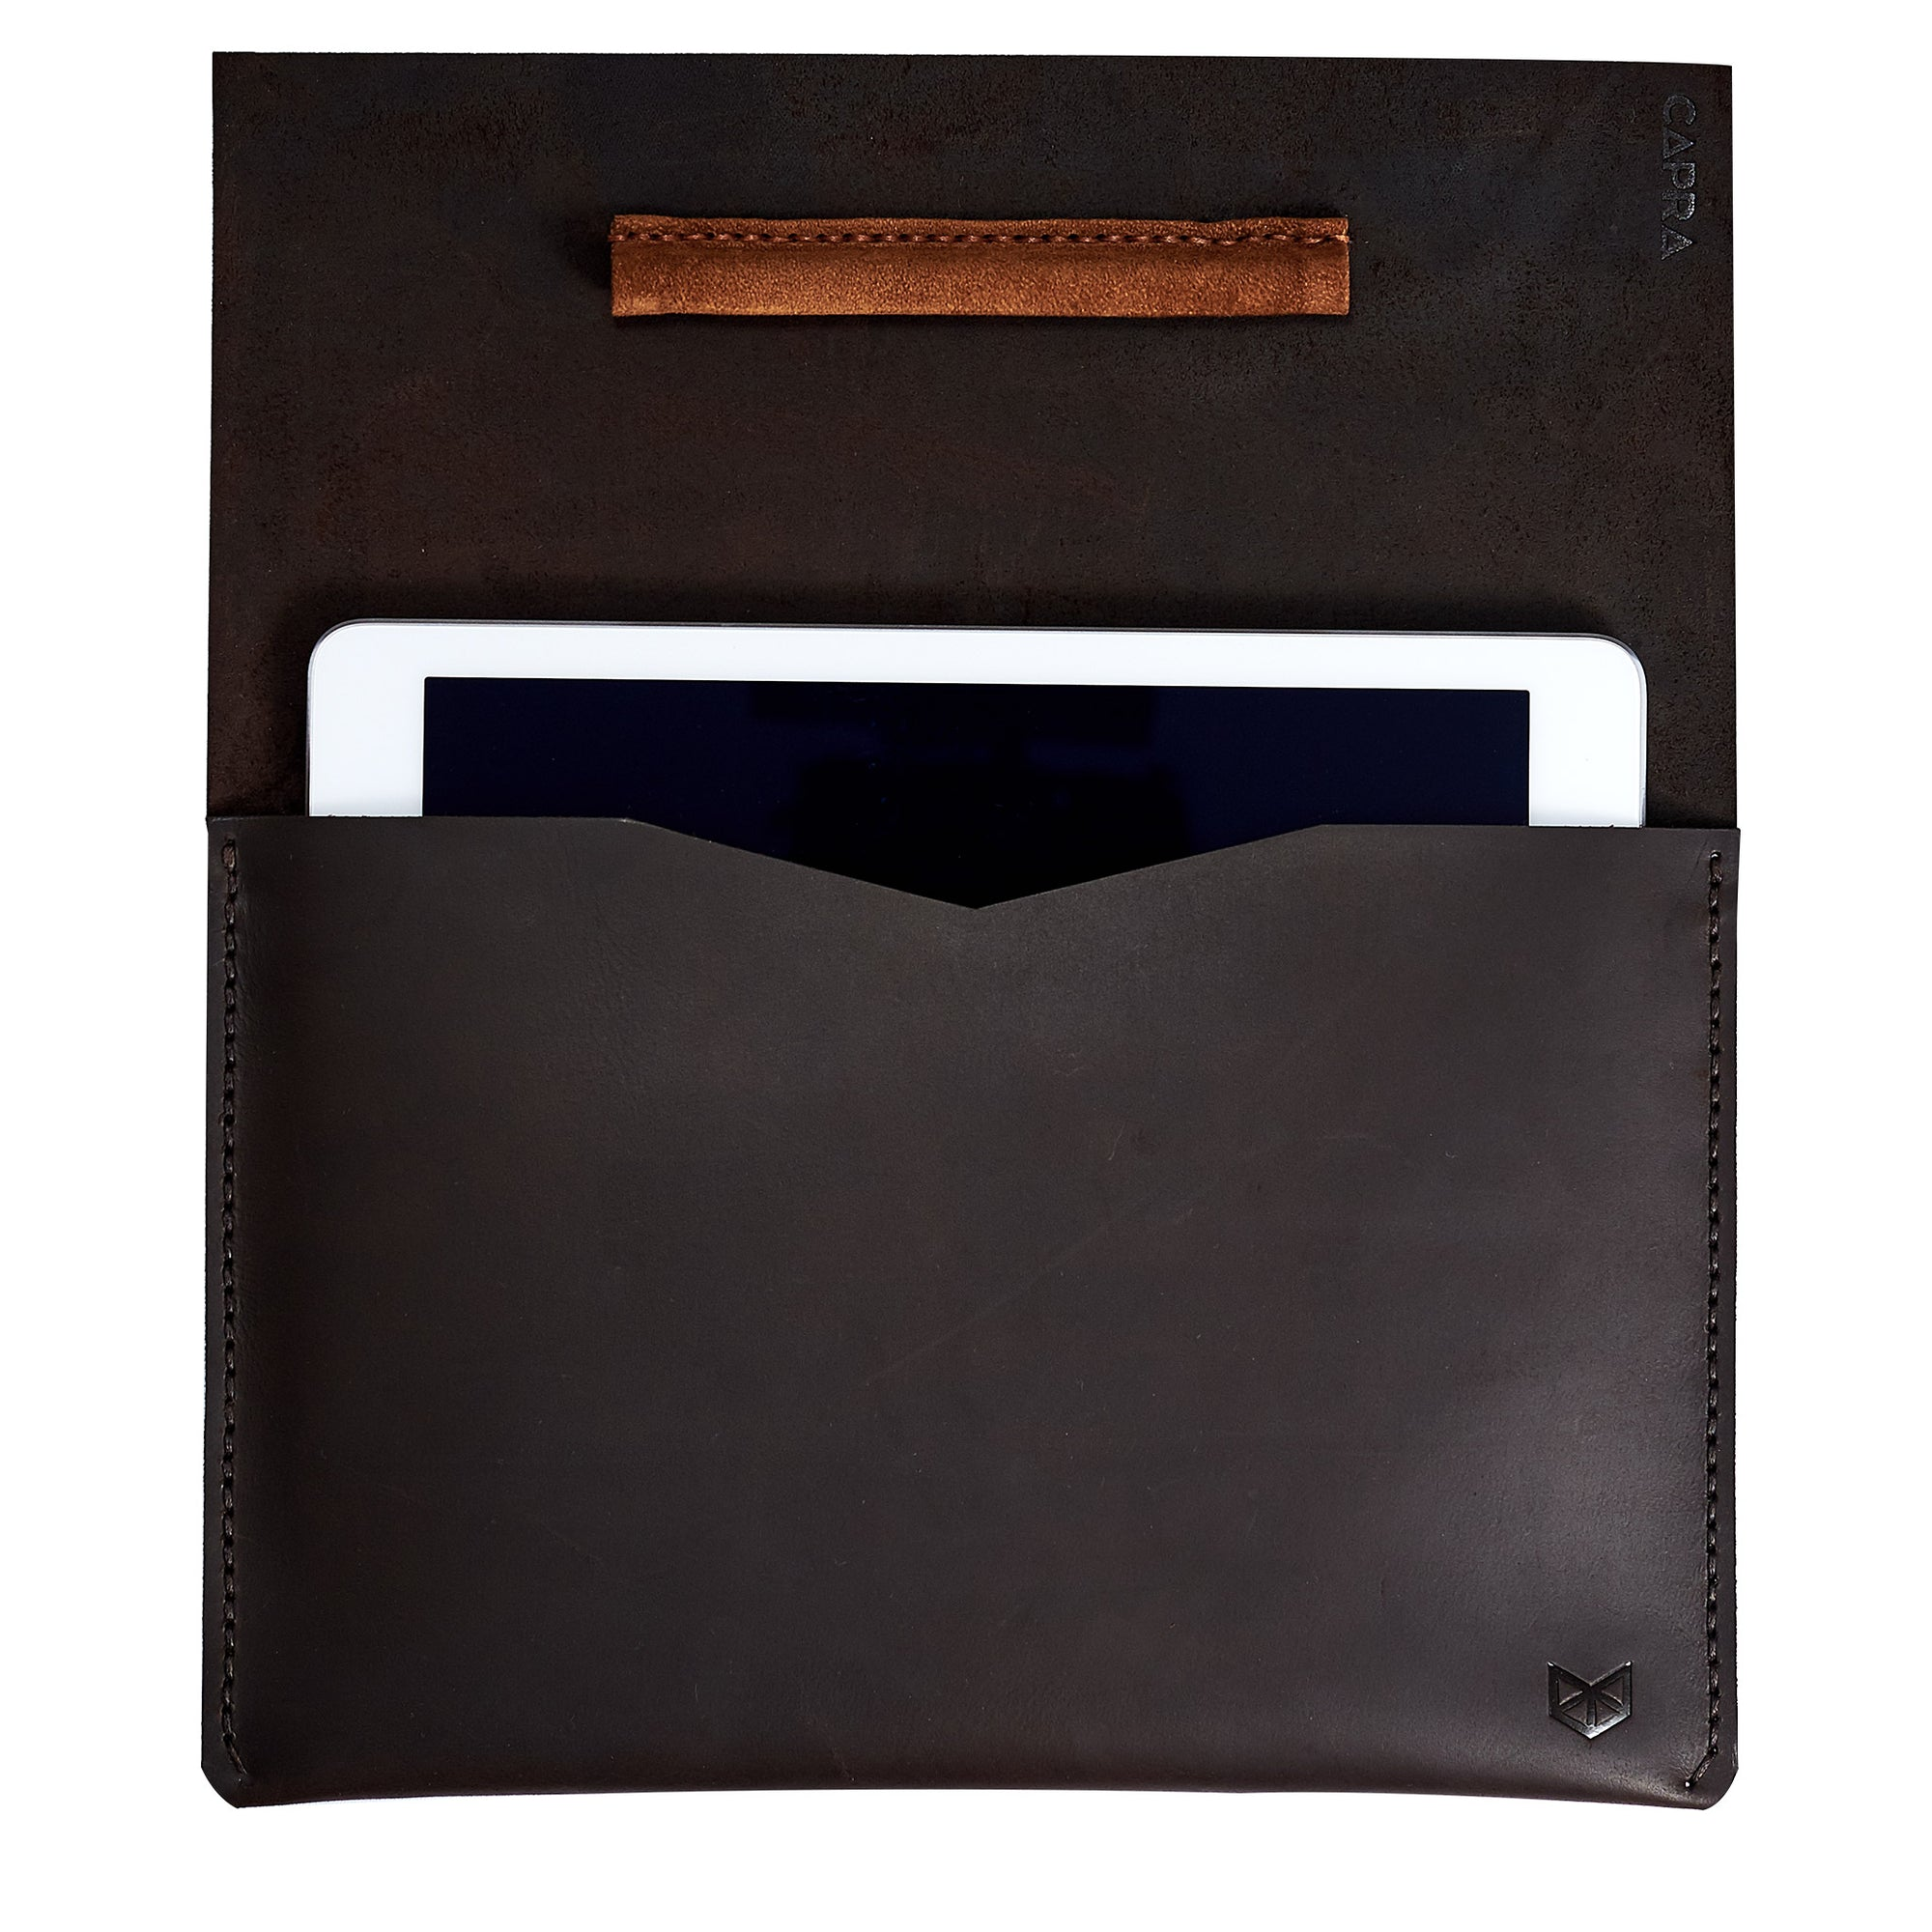 Draftsman 1 iPad Case · Marron